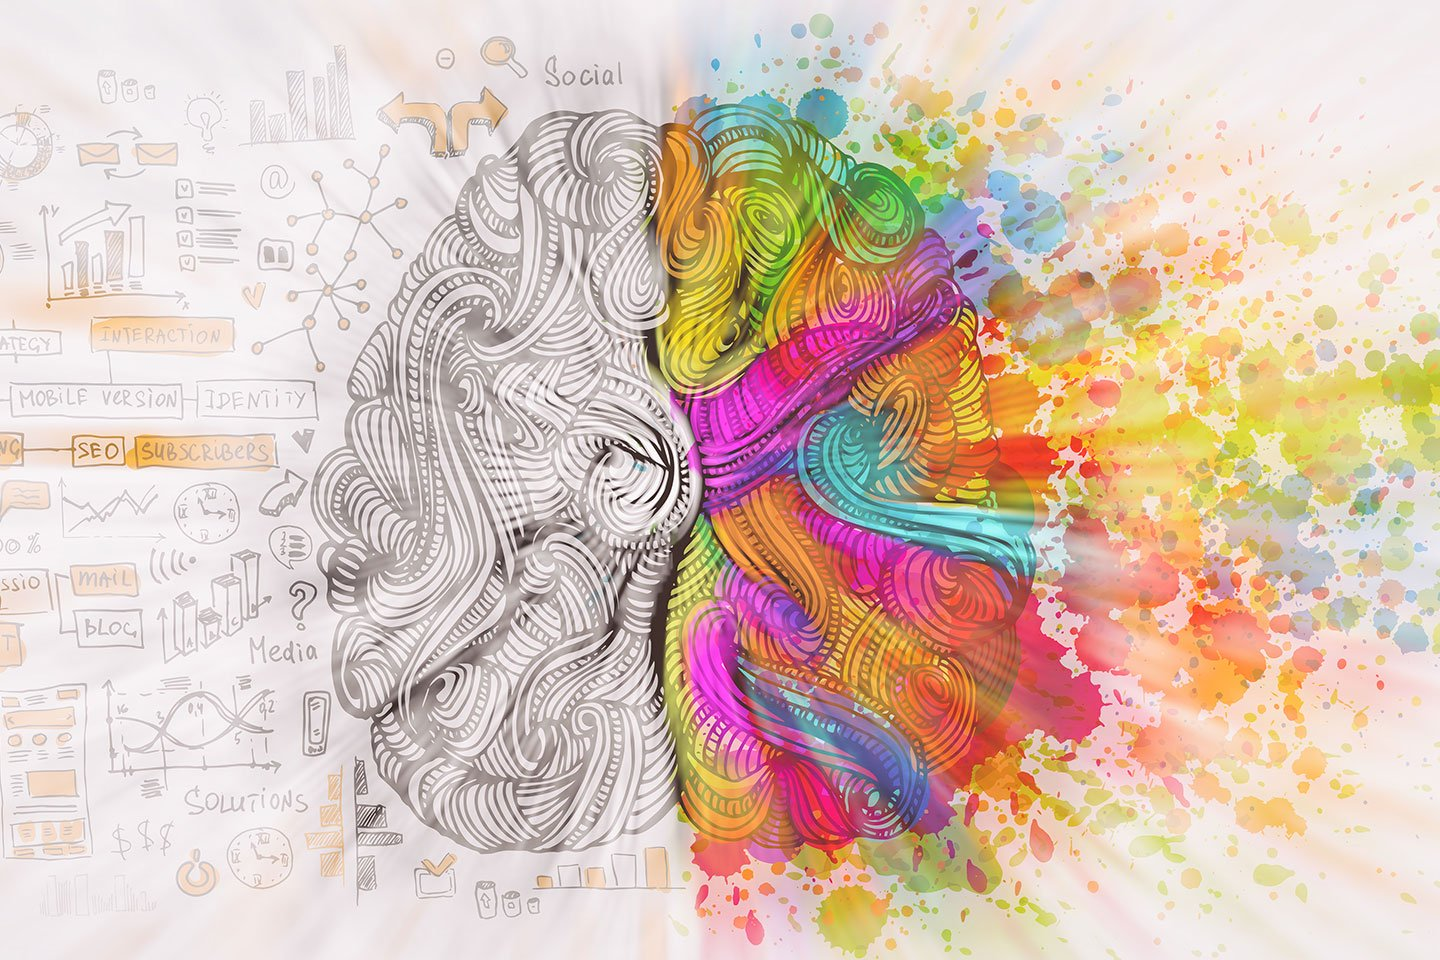 Boost your emotional and social intelligence skills